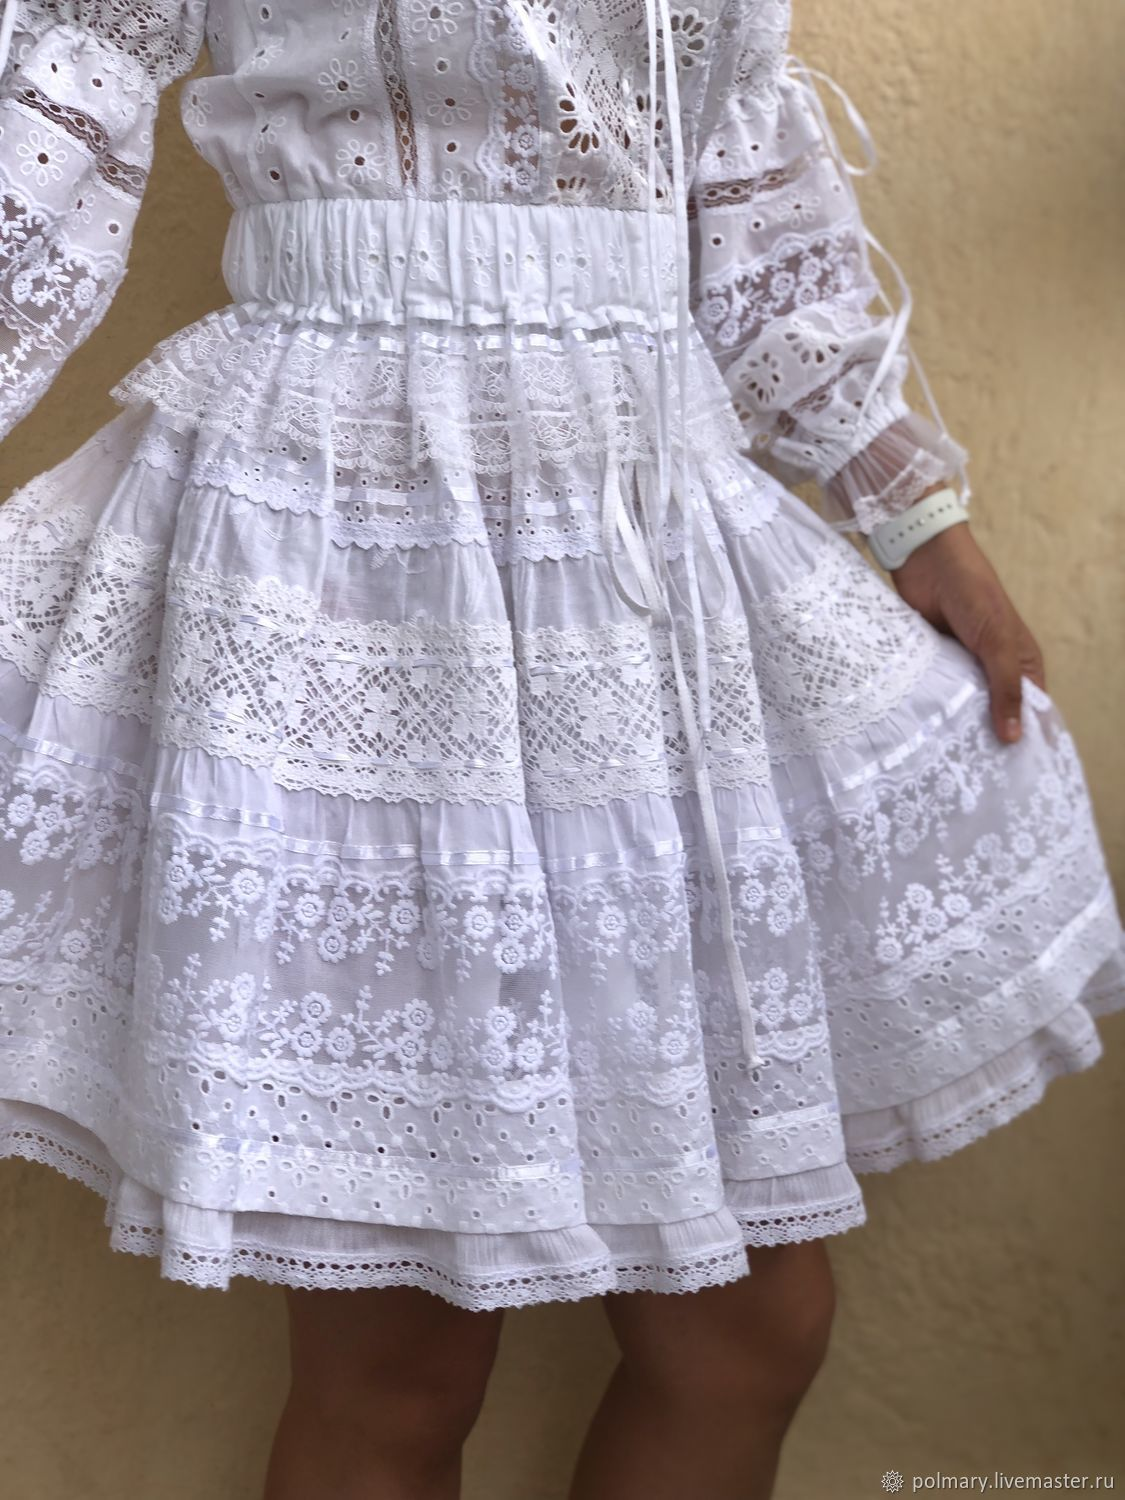 White skirt made of cotton, sewing and lace in boho-Odette style, Skirts, Tashkent, Фото №1